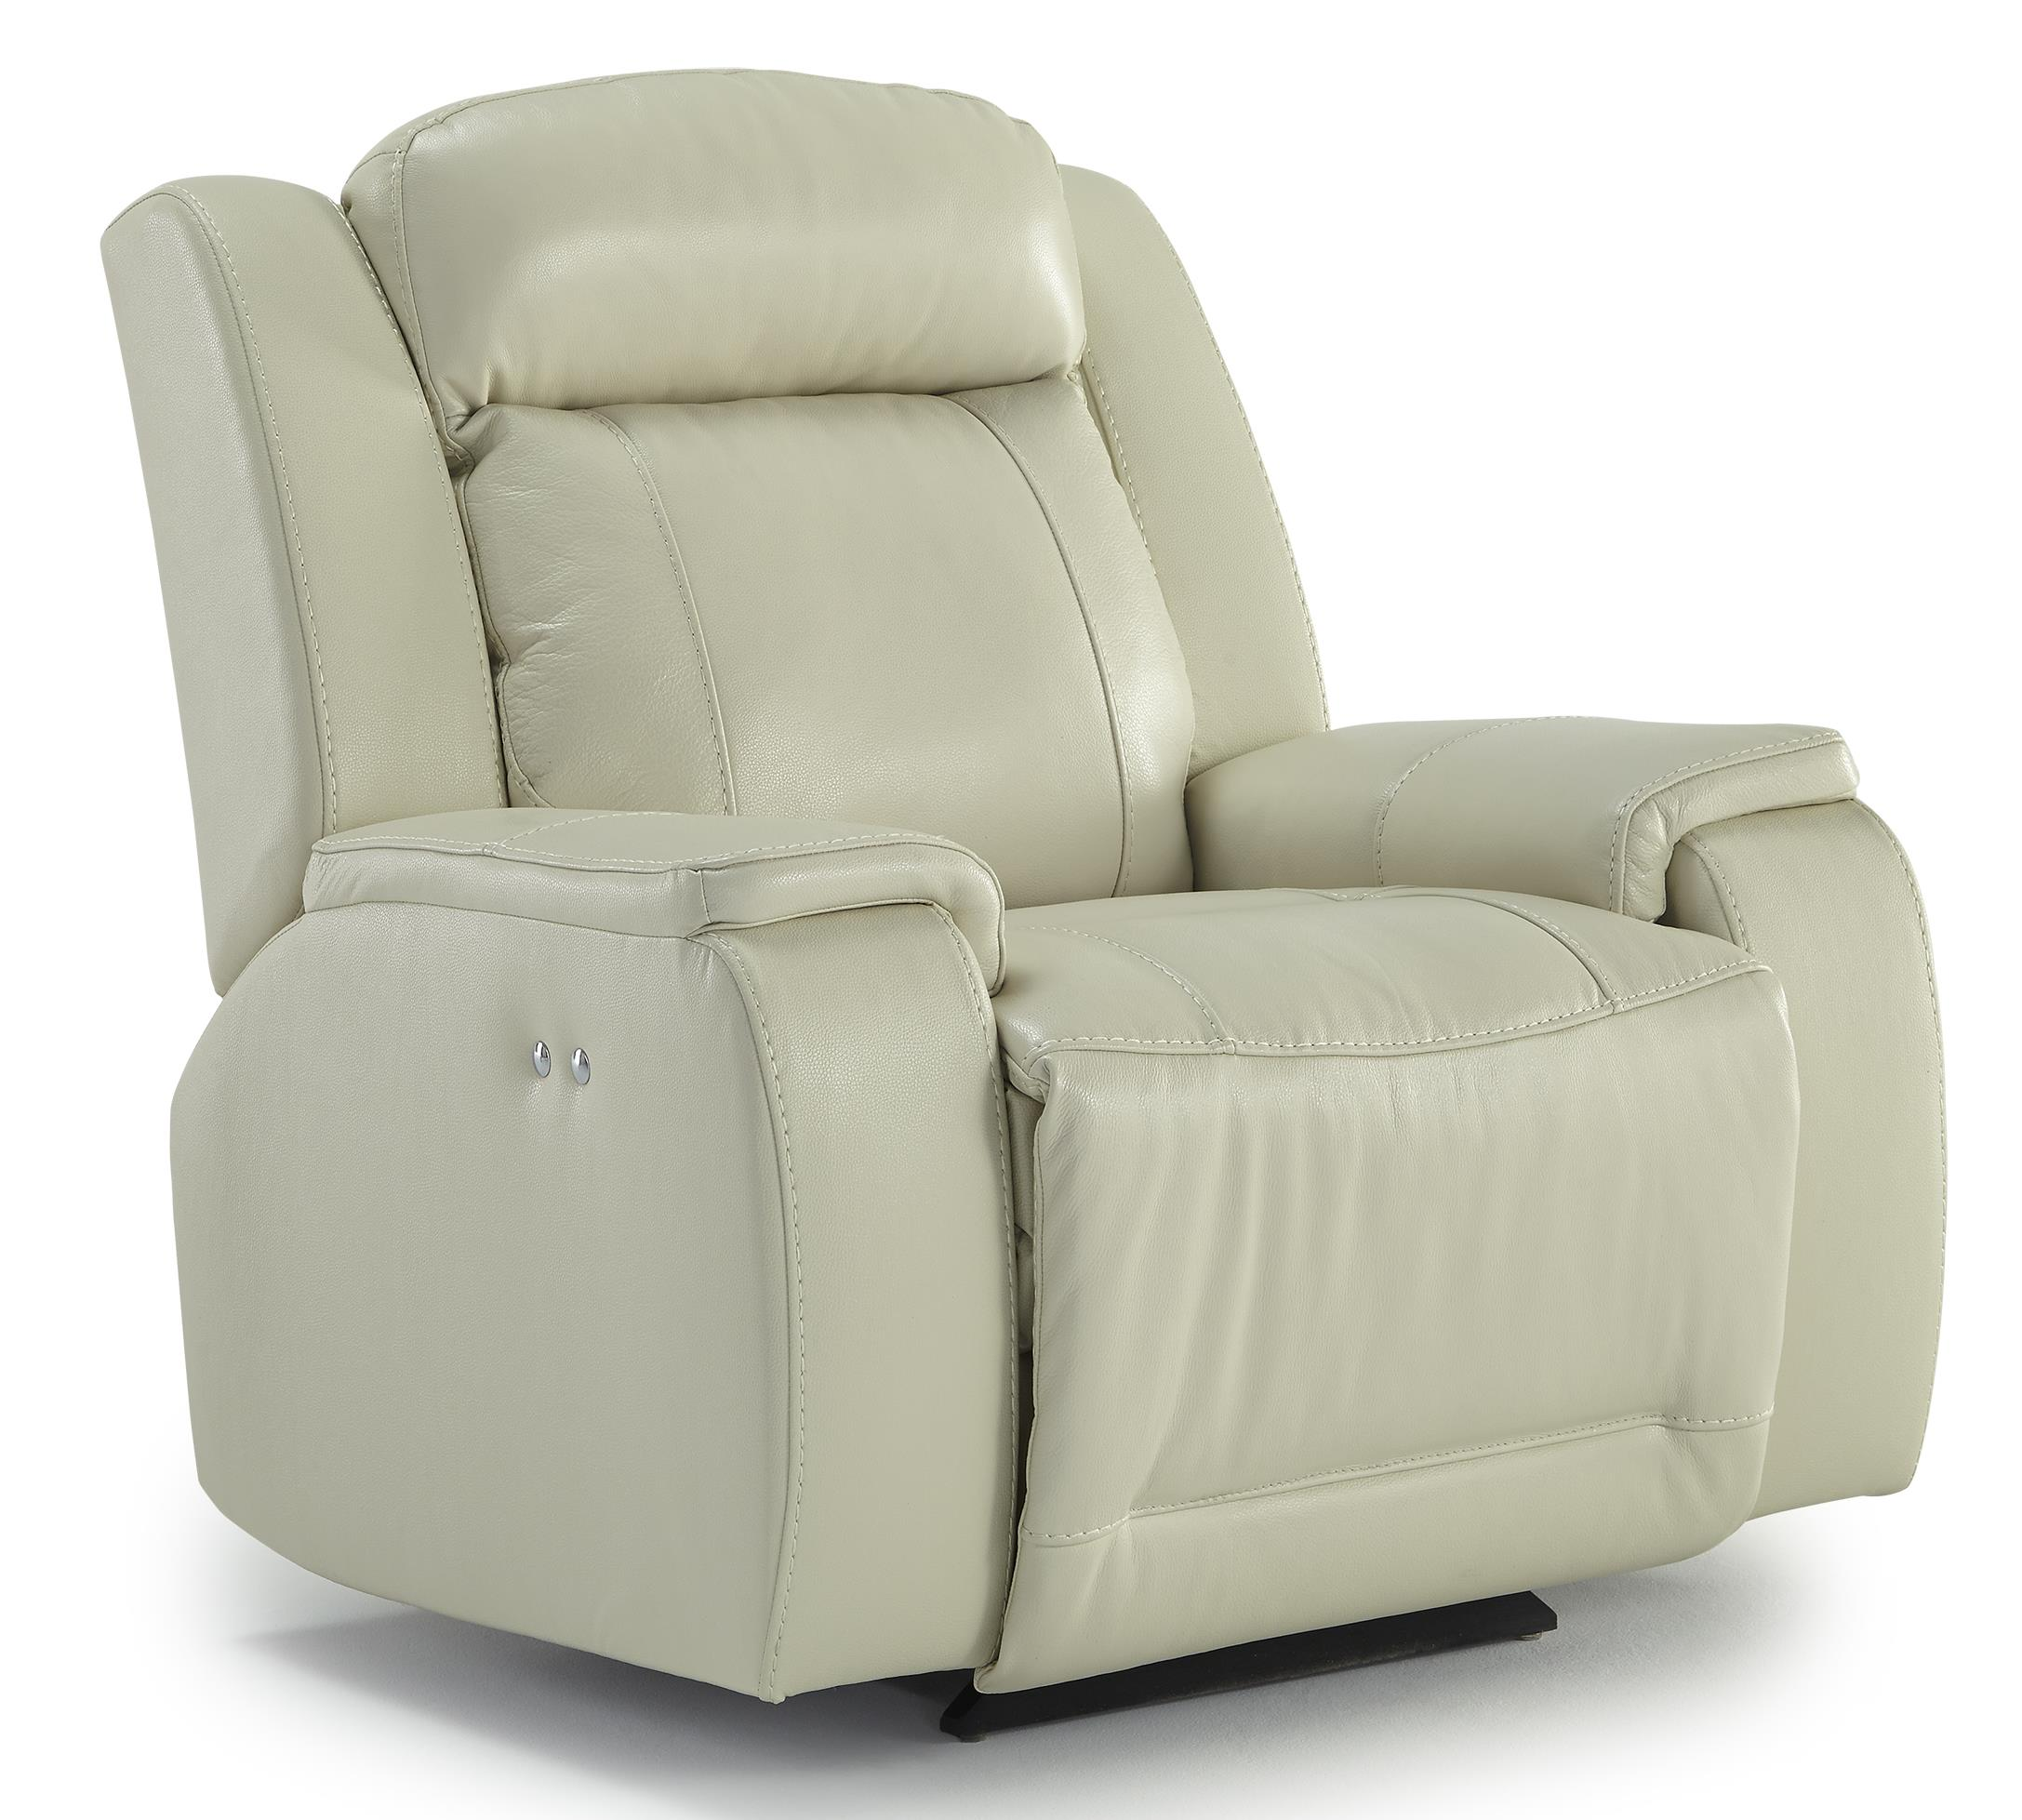 Best Home Furnishings Hardisty Power Space Saver Recliner - Item Number: 6NP84LV-76507LV